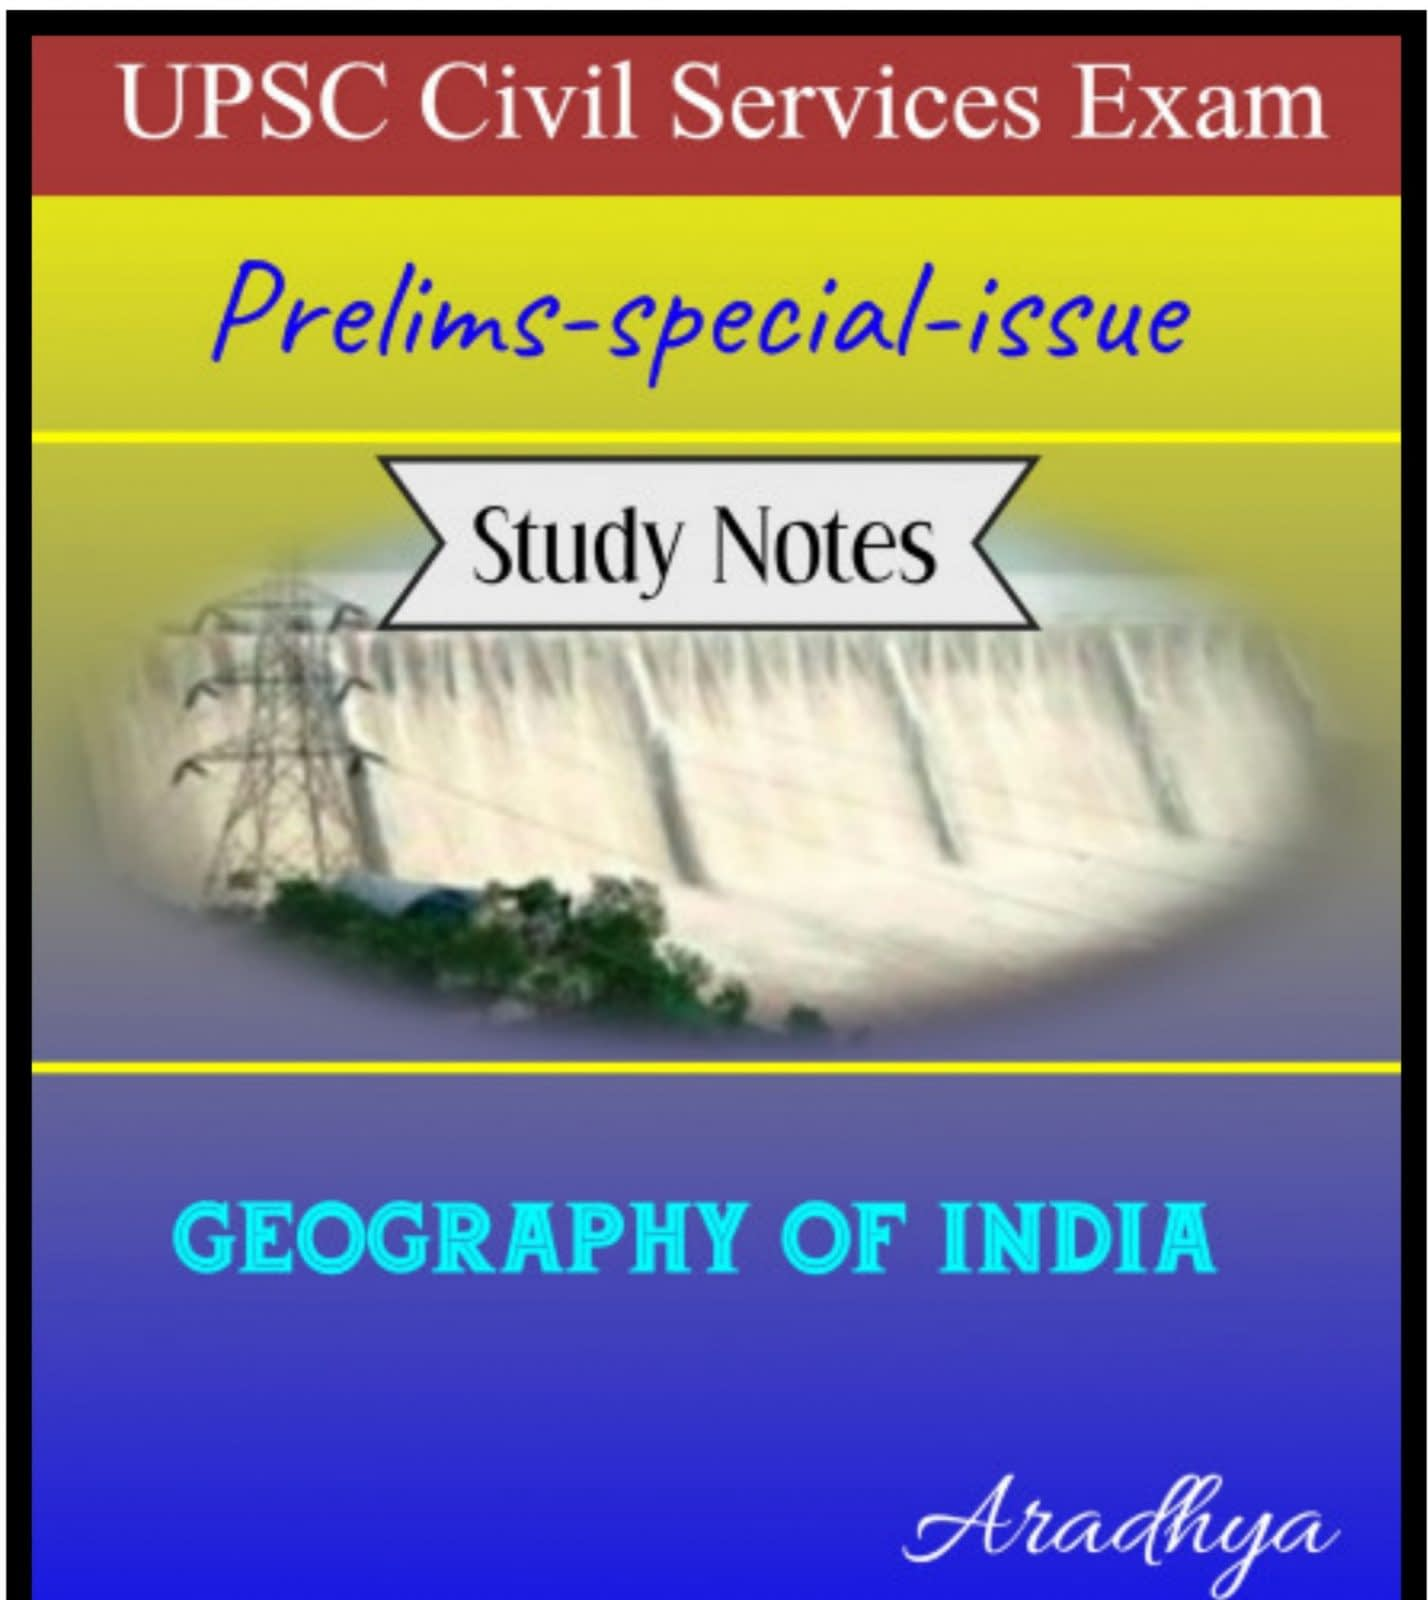 Geography of India-IAS Prelims 2019